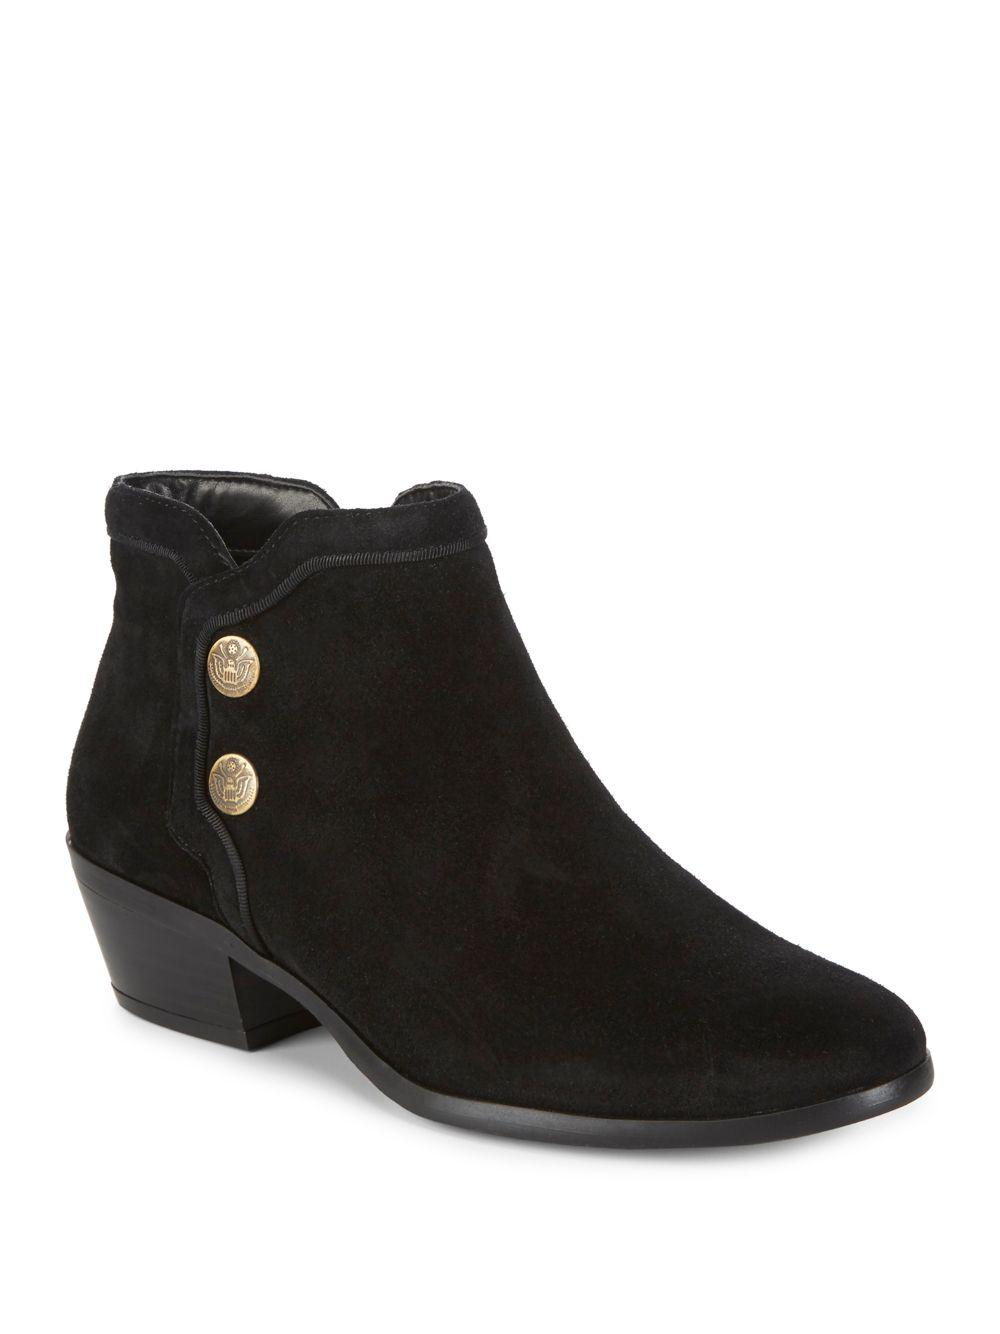 c7e5d2fdf Lyst - Sam Edelman Pacer Suede Booties in Black - Save 19%